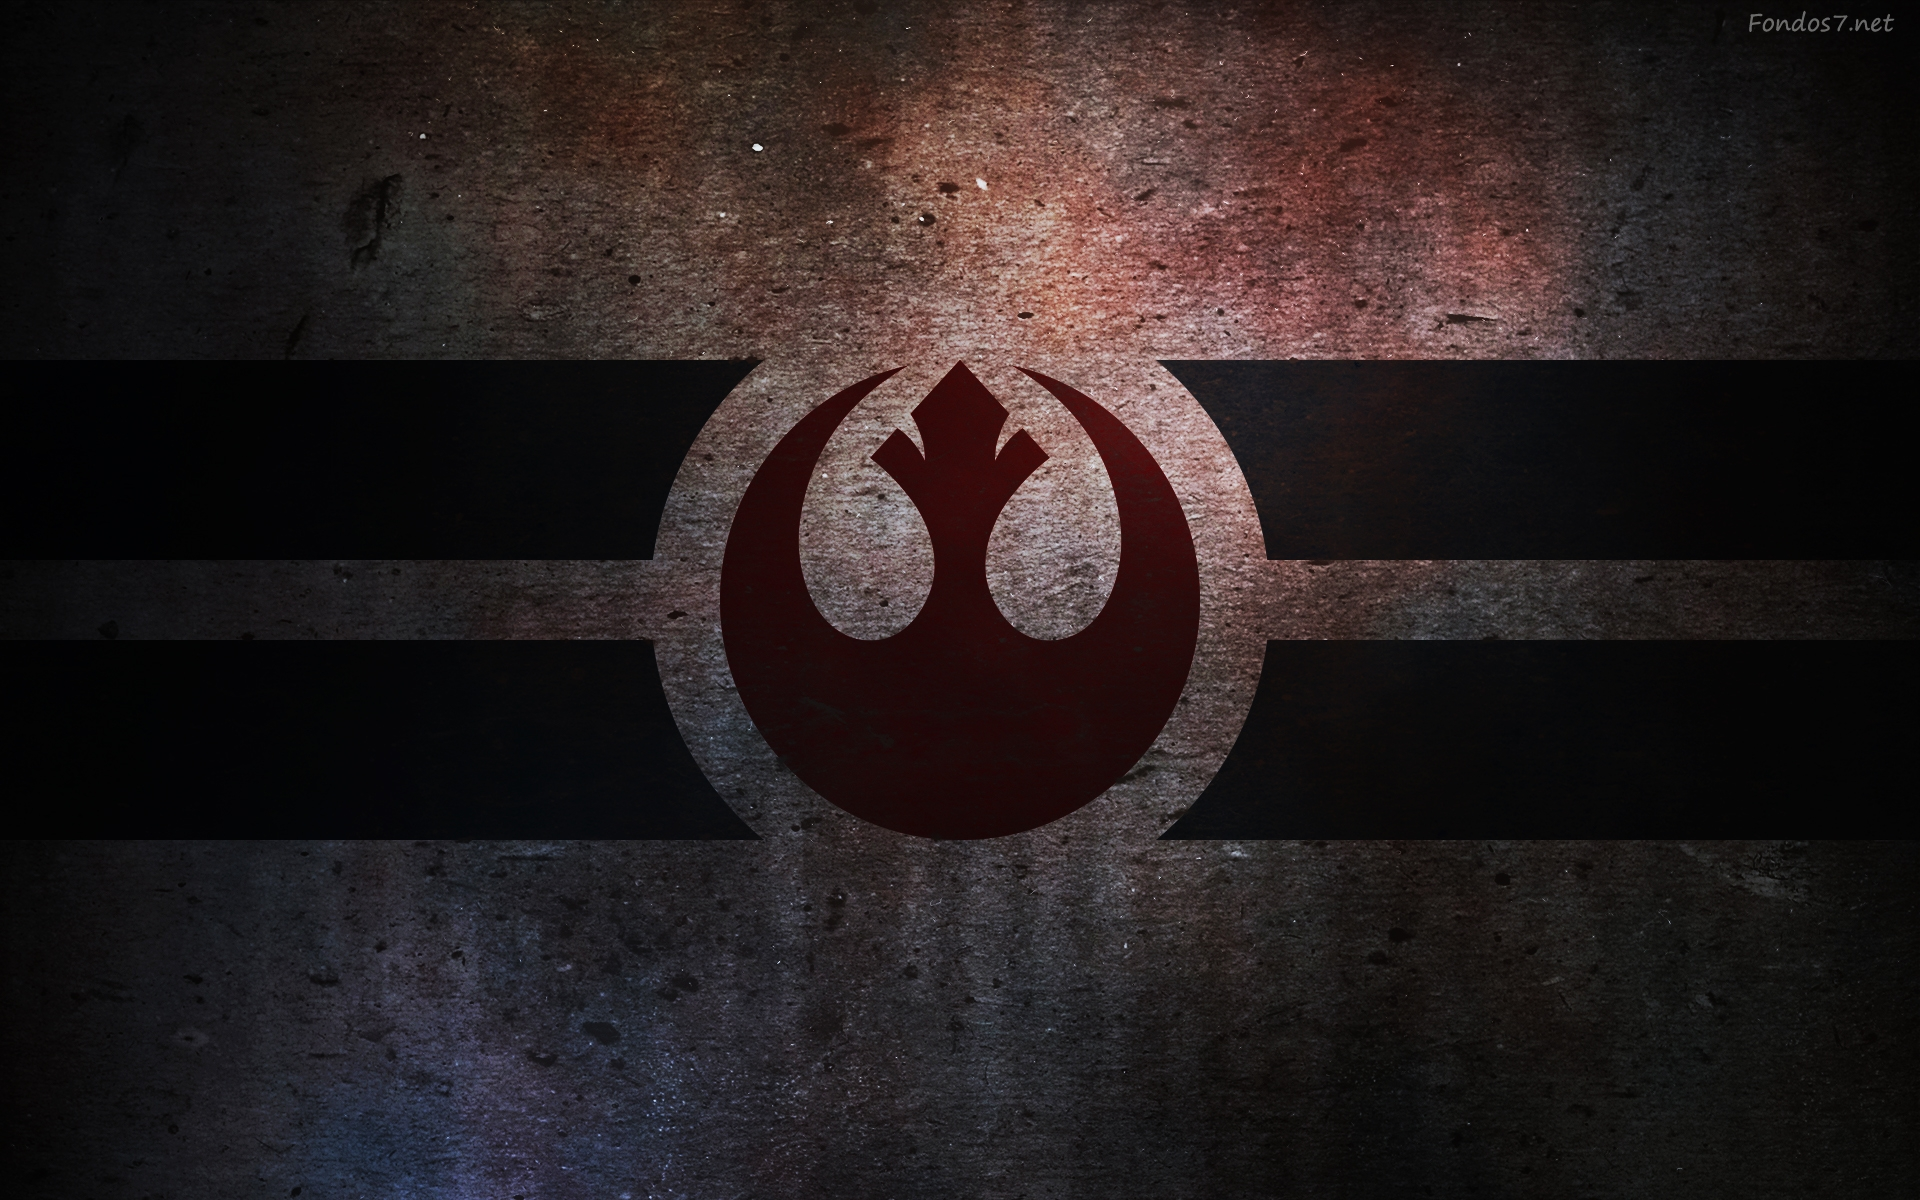 Wallpapers de Star Wars HD   Taringa 1920x1200